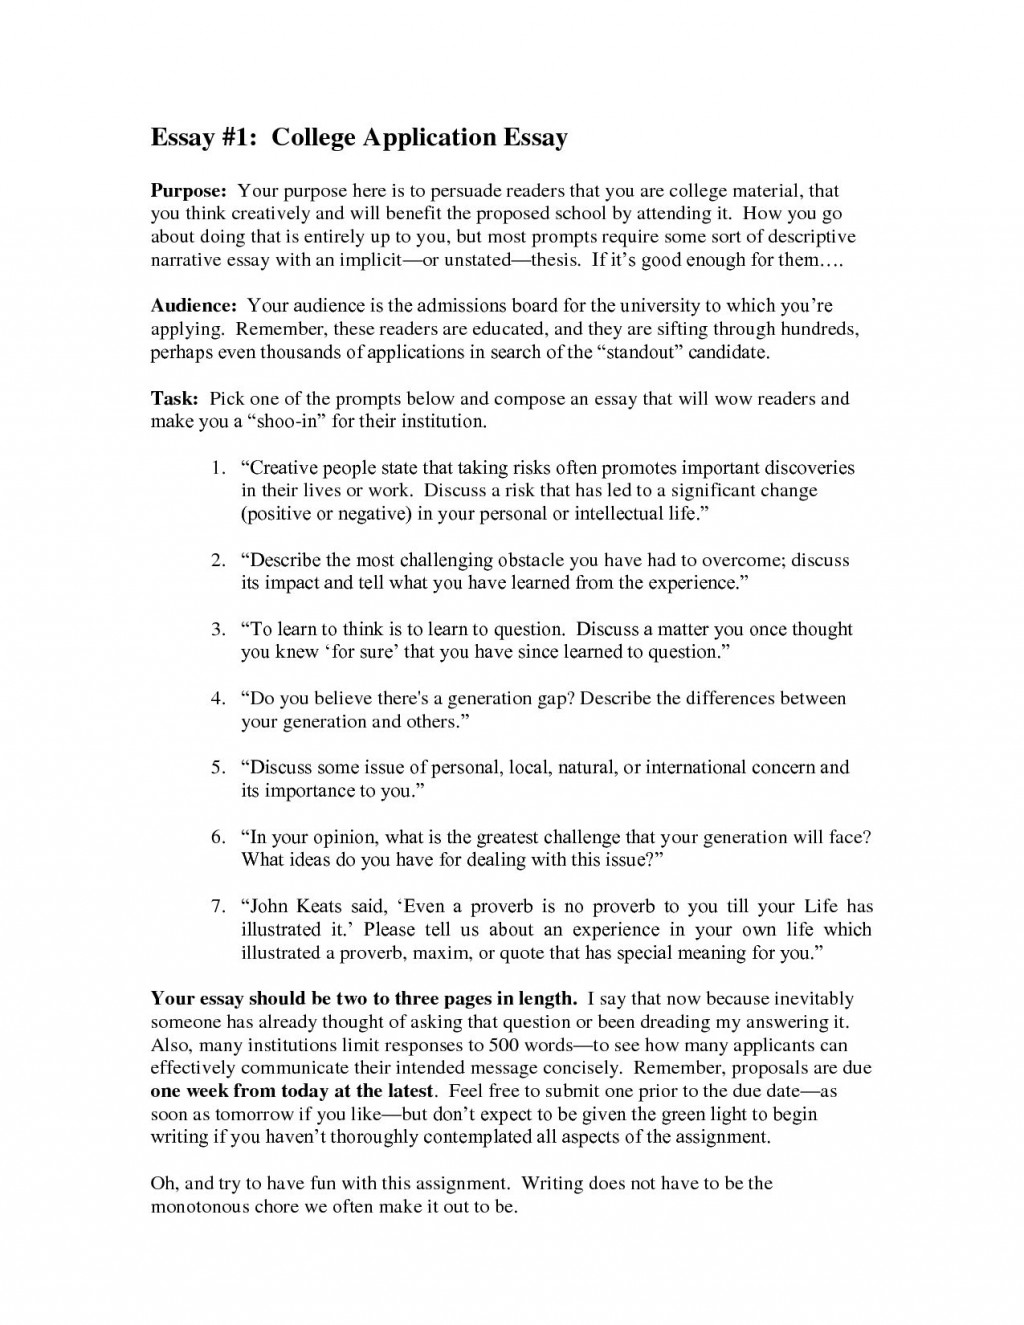 006 Interesting Research Paper Topics Biology Fearsome Cell For Evolutionary High School Large